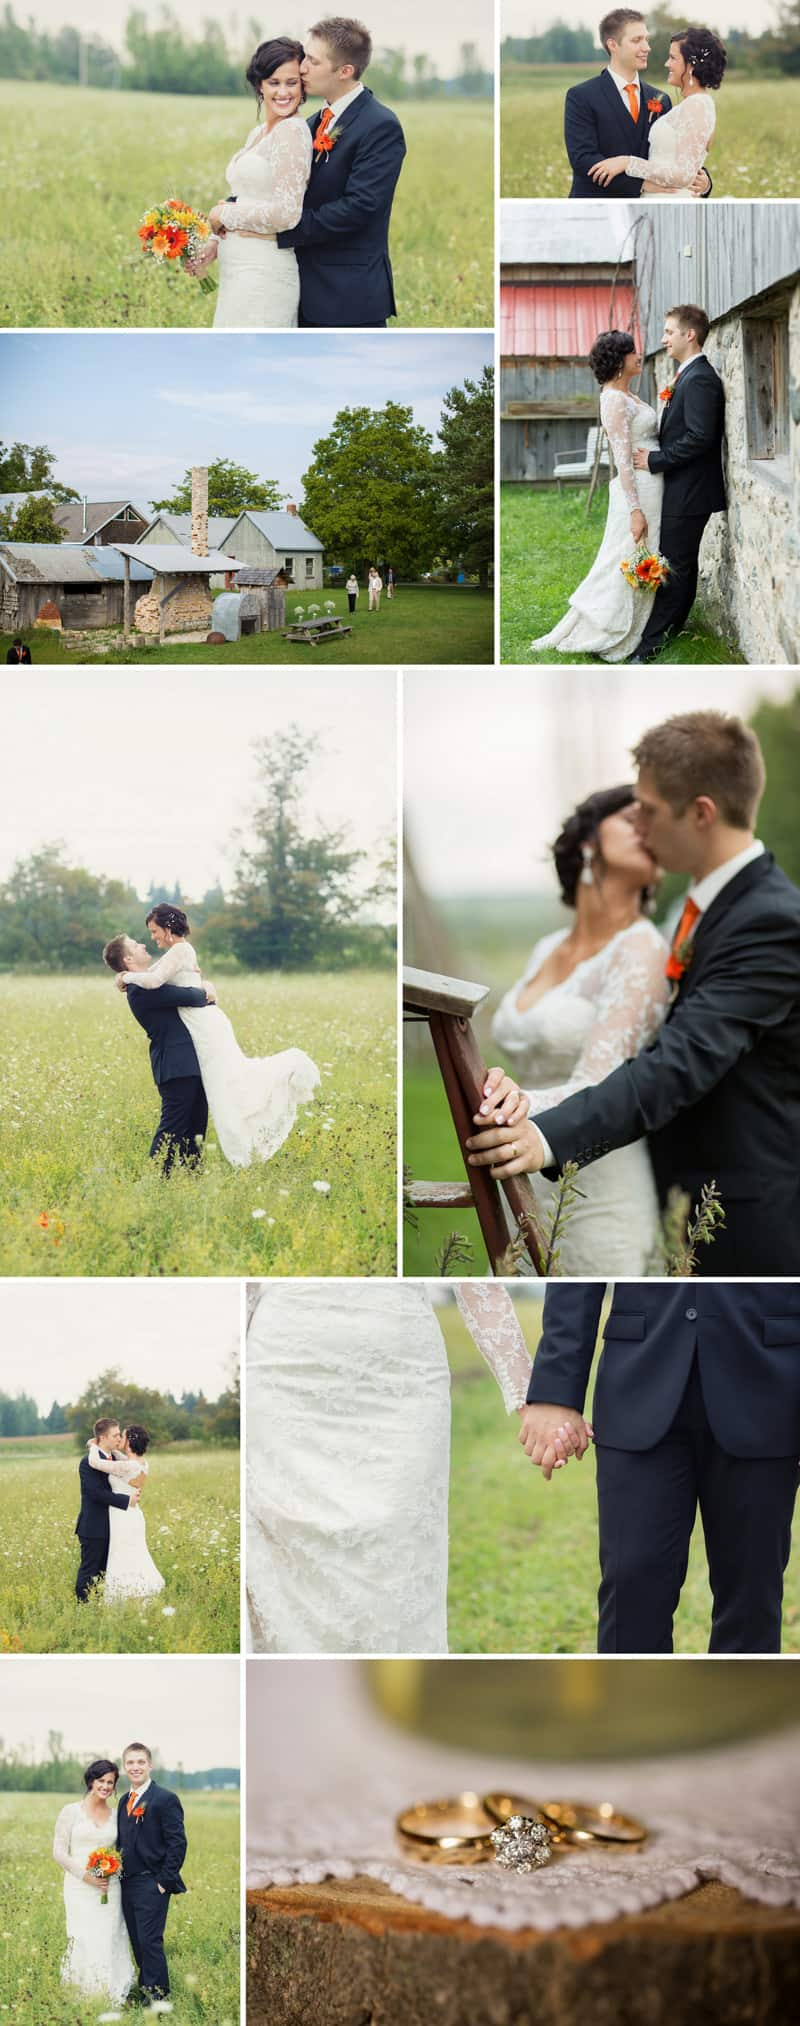 A Romantic Fall Wedding in a Rustic Barn 7